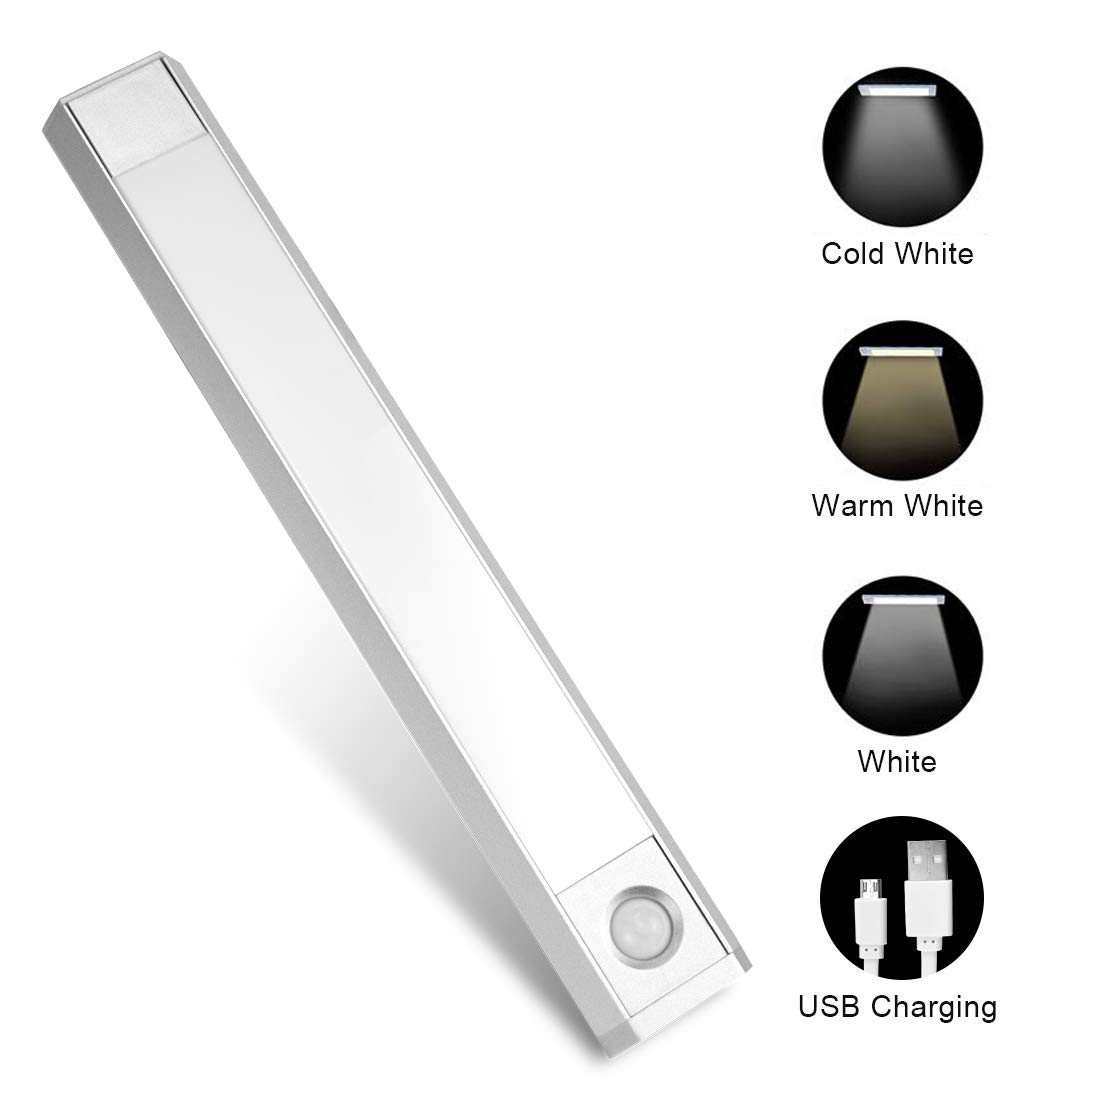 Closet Light, 60 LEDs Rechargeable Motion Sensor Under Cabinet Light with Large Battery Life Wireless for Closet,Cabinet,Wardrobe,Kitchen,Hallway 3 Colors 3 Modes